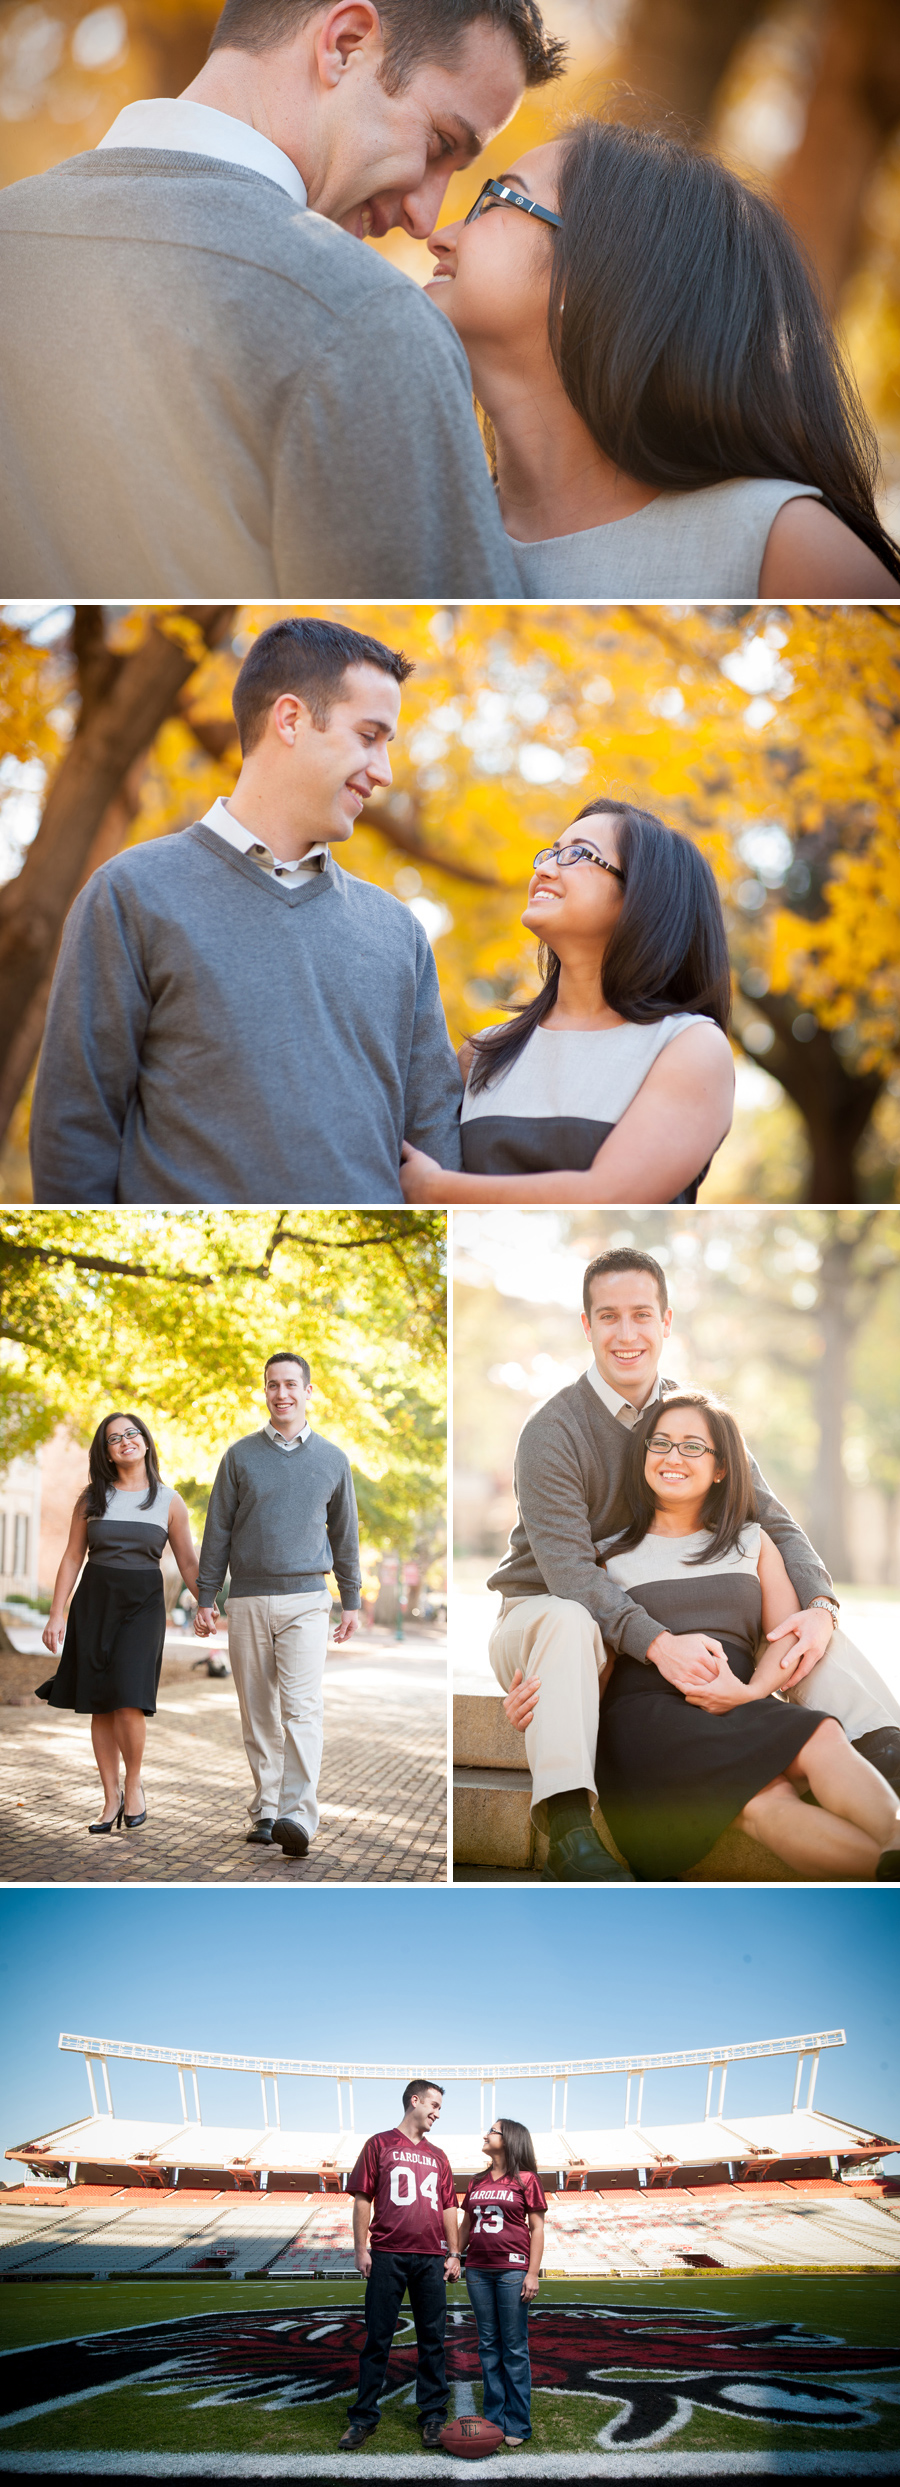 Liz and TK engagements at Williams Brice Stadium